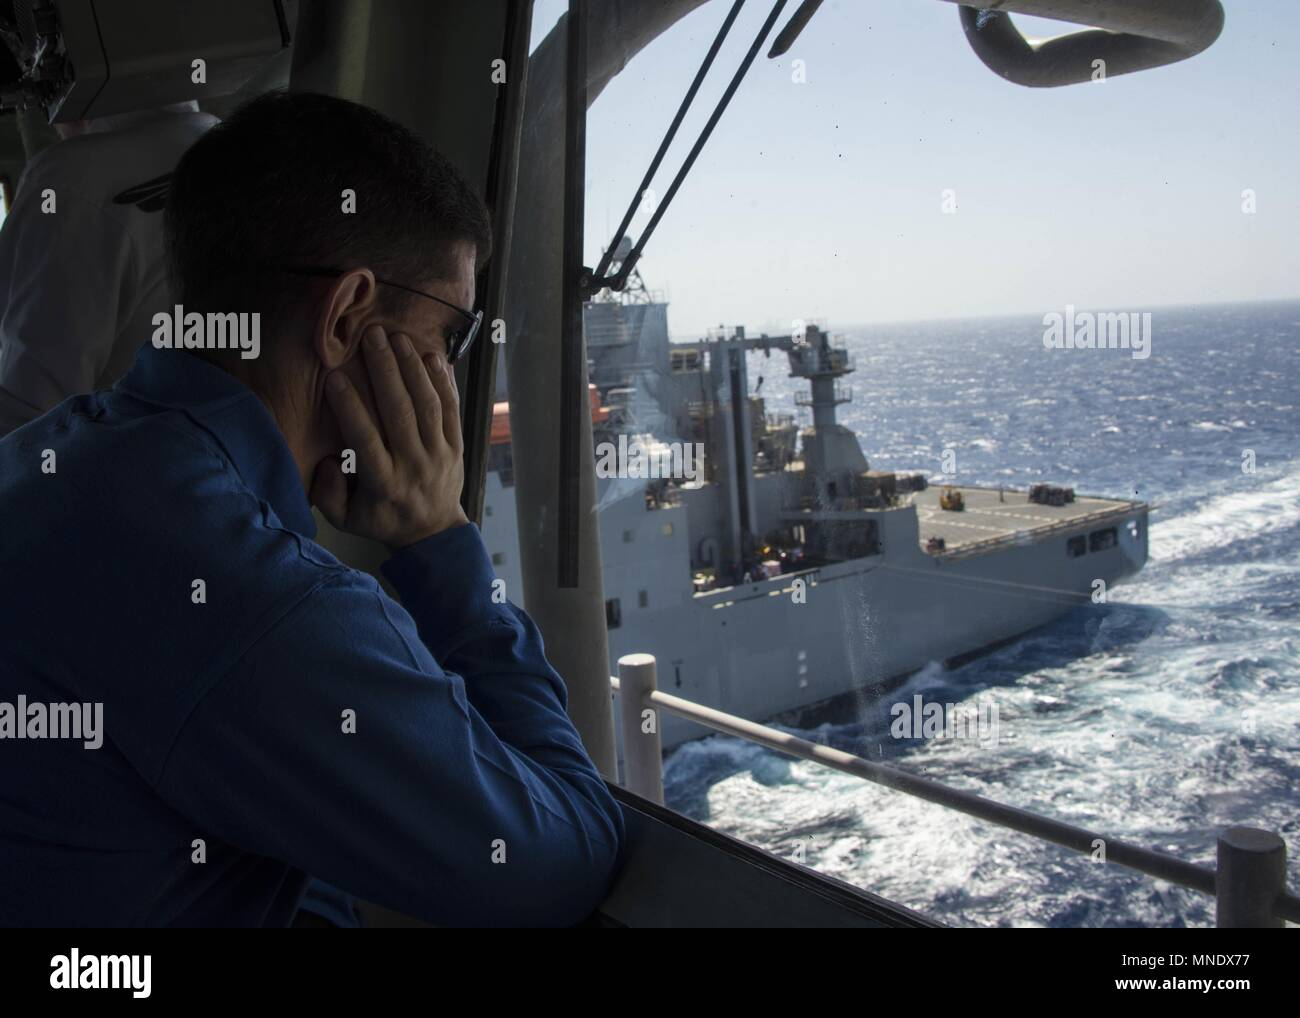 180515-N-AH771-0255 U.S. 5TH FLEET AREA OF OPERATIONS (May 15, 2018) Capt. Darrell S. Canady, executive officer aboard the Wasp-class amphibious assault ship USS Iwo Jima (LHD 7) watches from the starboard side bridge-wing as the ship conducts a replenishment-at-sea with the dry cargo and ammunition ship USNS Amelia Earhart (T-AKE 6), May 15, 2018, May 15, 2018. Iwo Jima, homeported in Mayport, Fla. is on deployment to the U.S. 5th Fleet area of operations in support of maritime security operations to reassure allies and partners, and preserve the freedom of navigation and the free flow of com Stock Photo